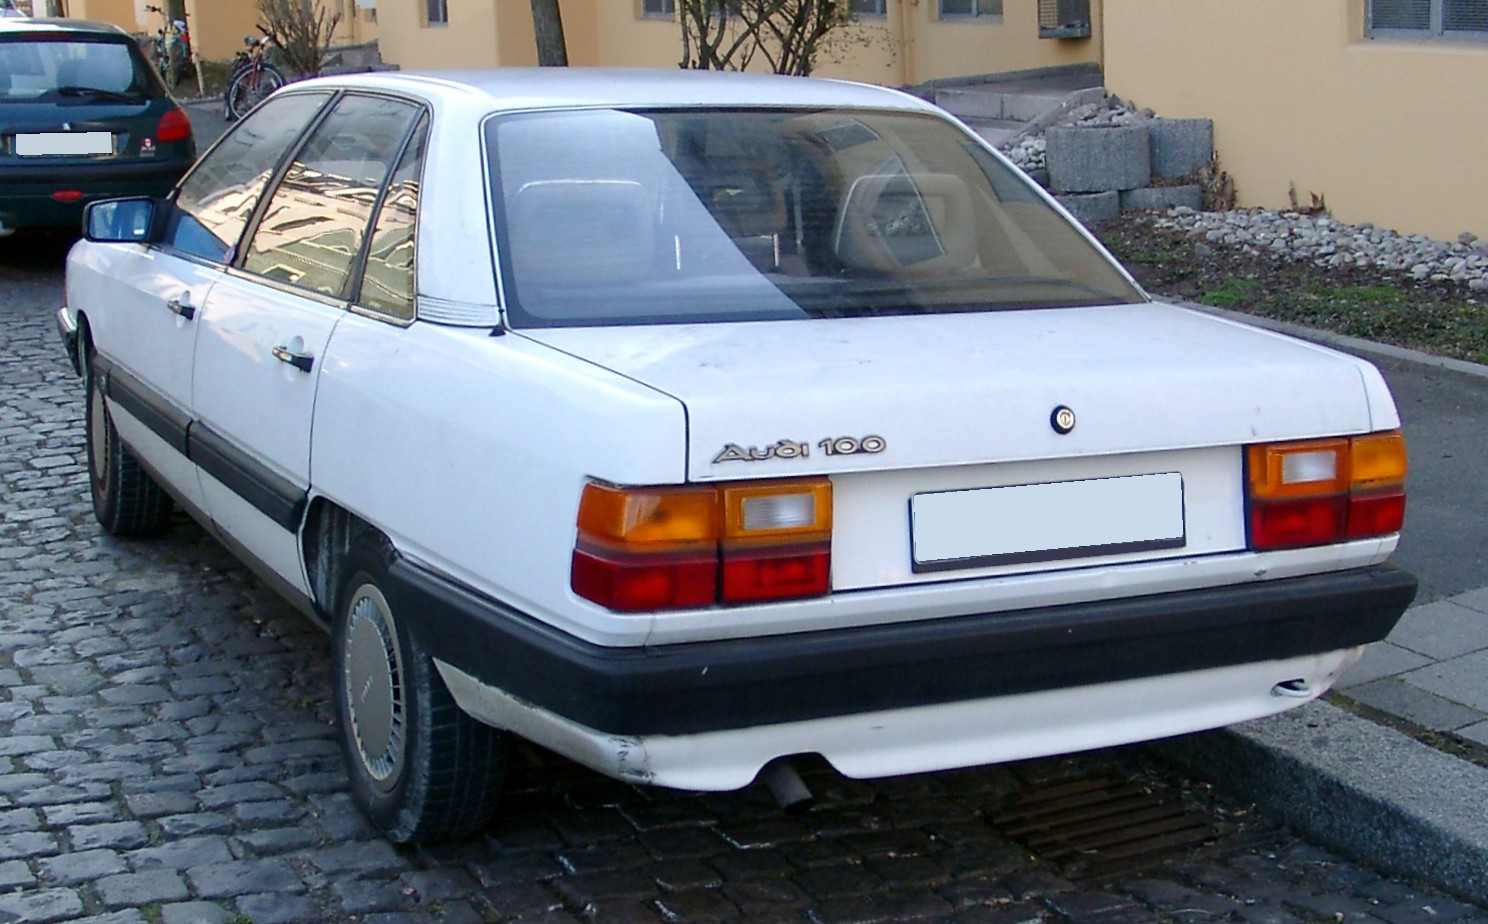 faw audi 100 images #9